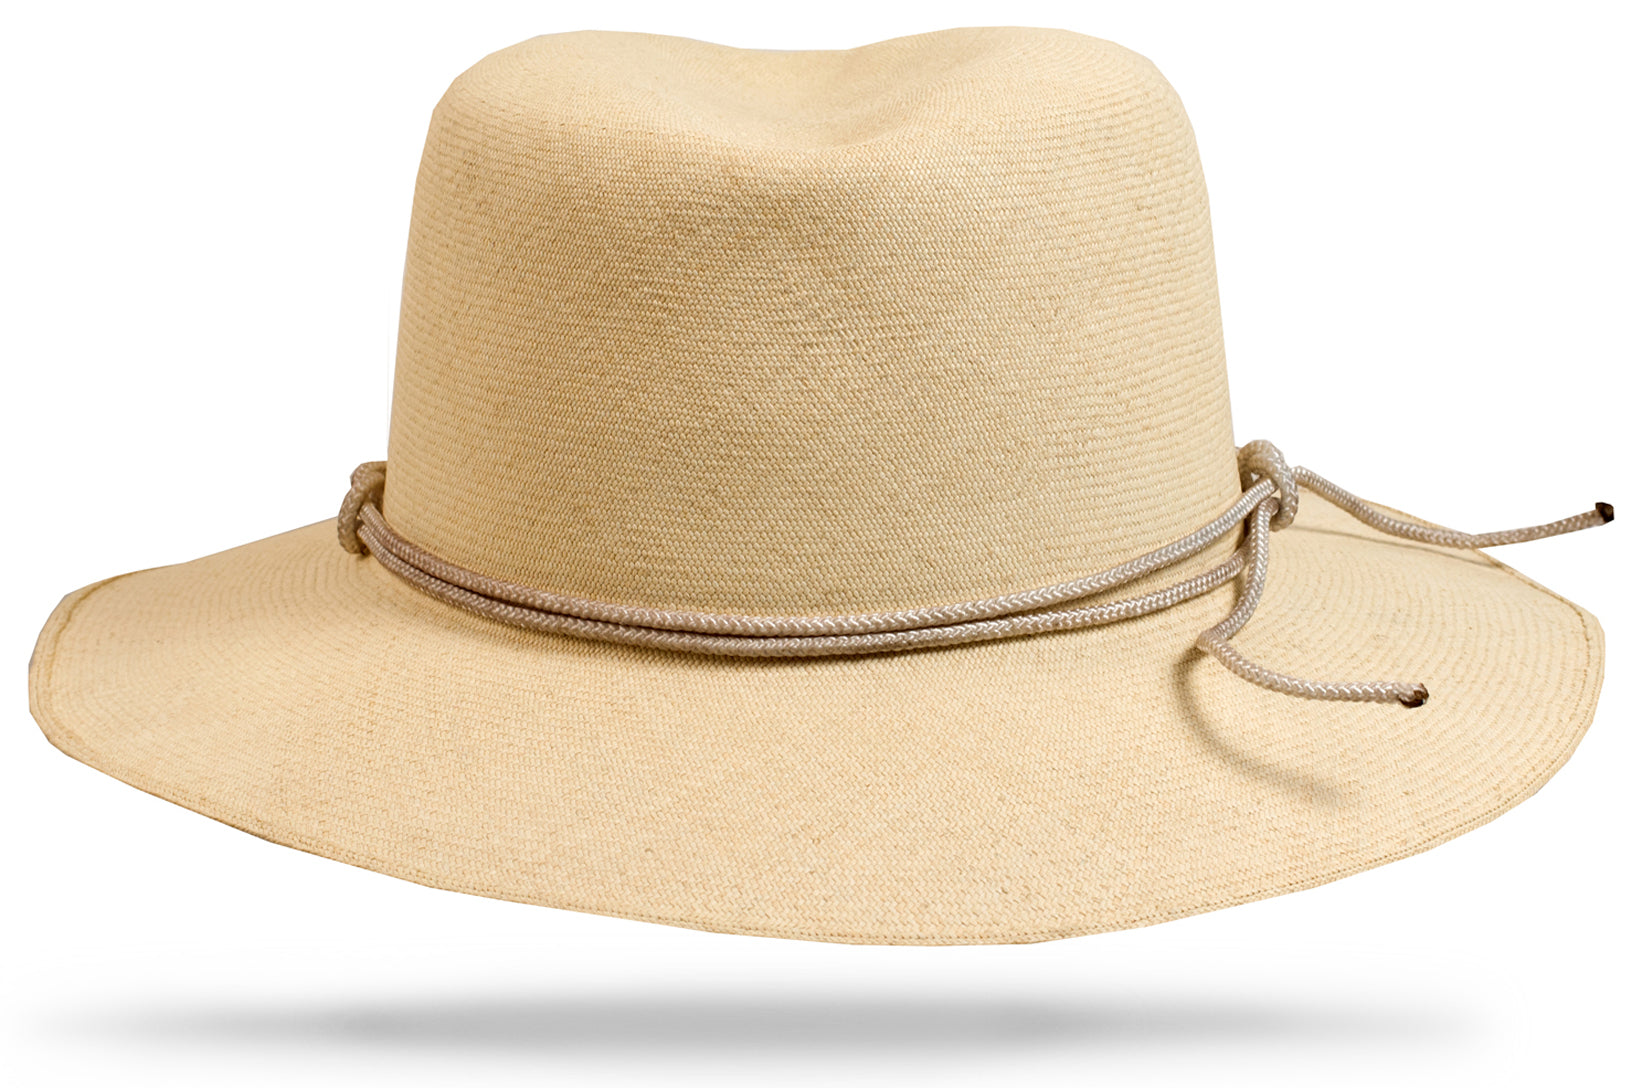 d430a917 Montecristi Panama Hats - Worth & Worth - Hat Maker - Superfino ...